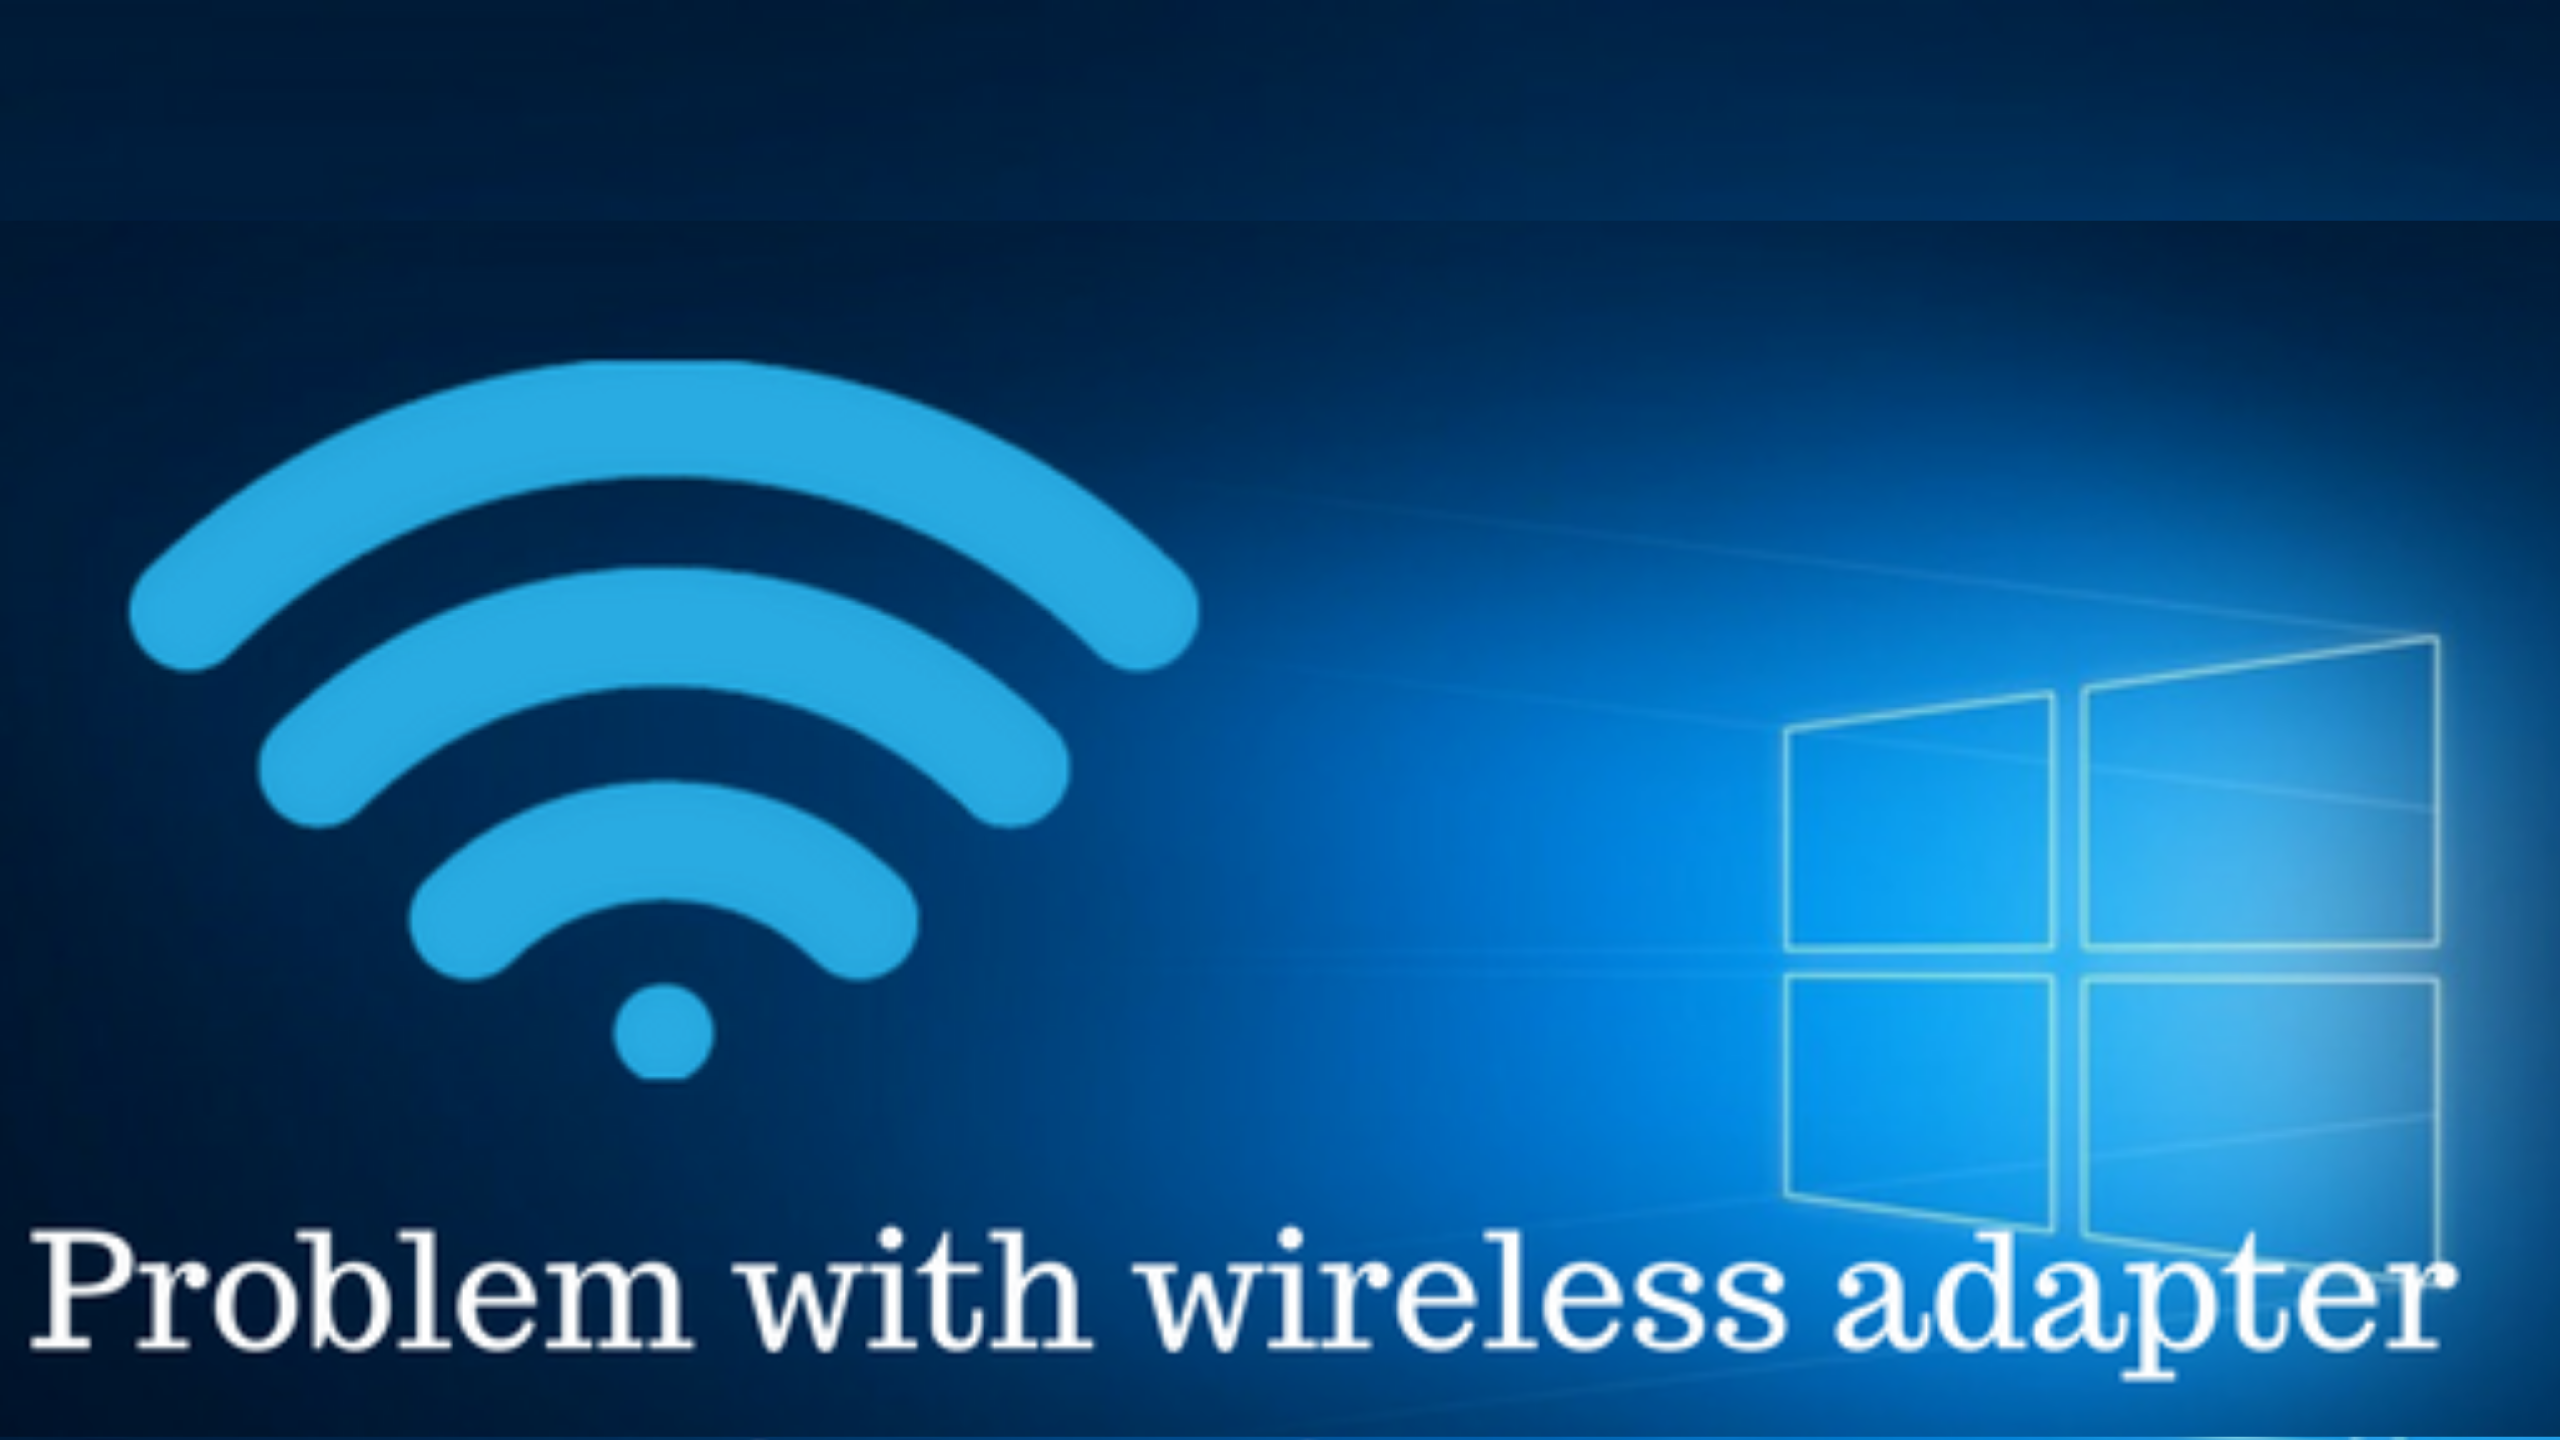 The Problem Of A Wireless Adapter Or Access Point - How To Fix This Issue With 5 Easy Solutions